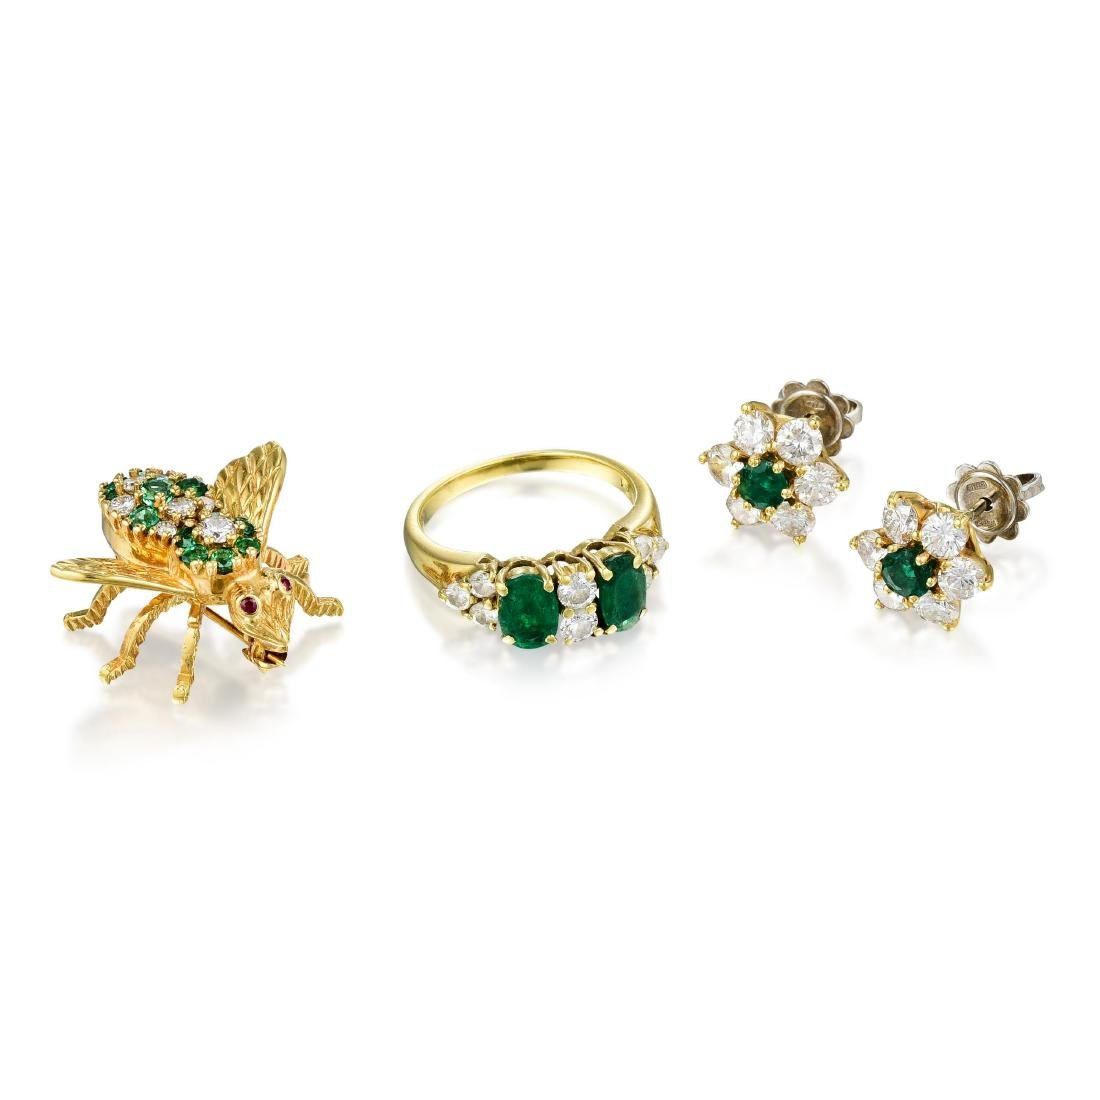 A Group of 18K Gold Emerald Jewelry